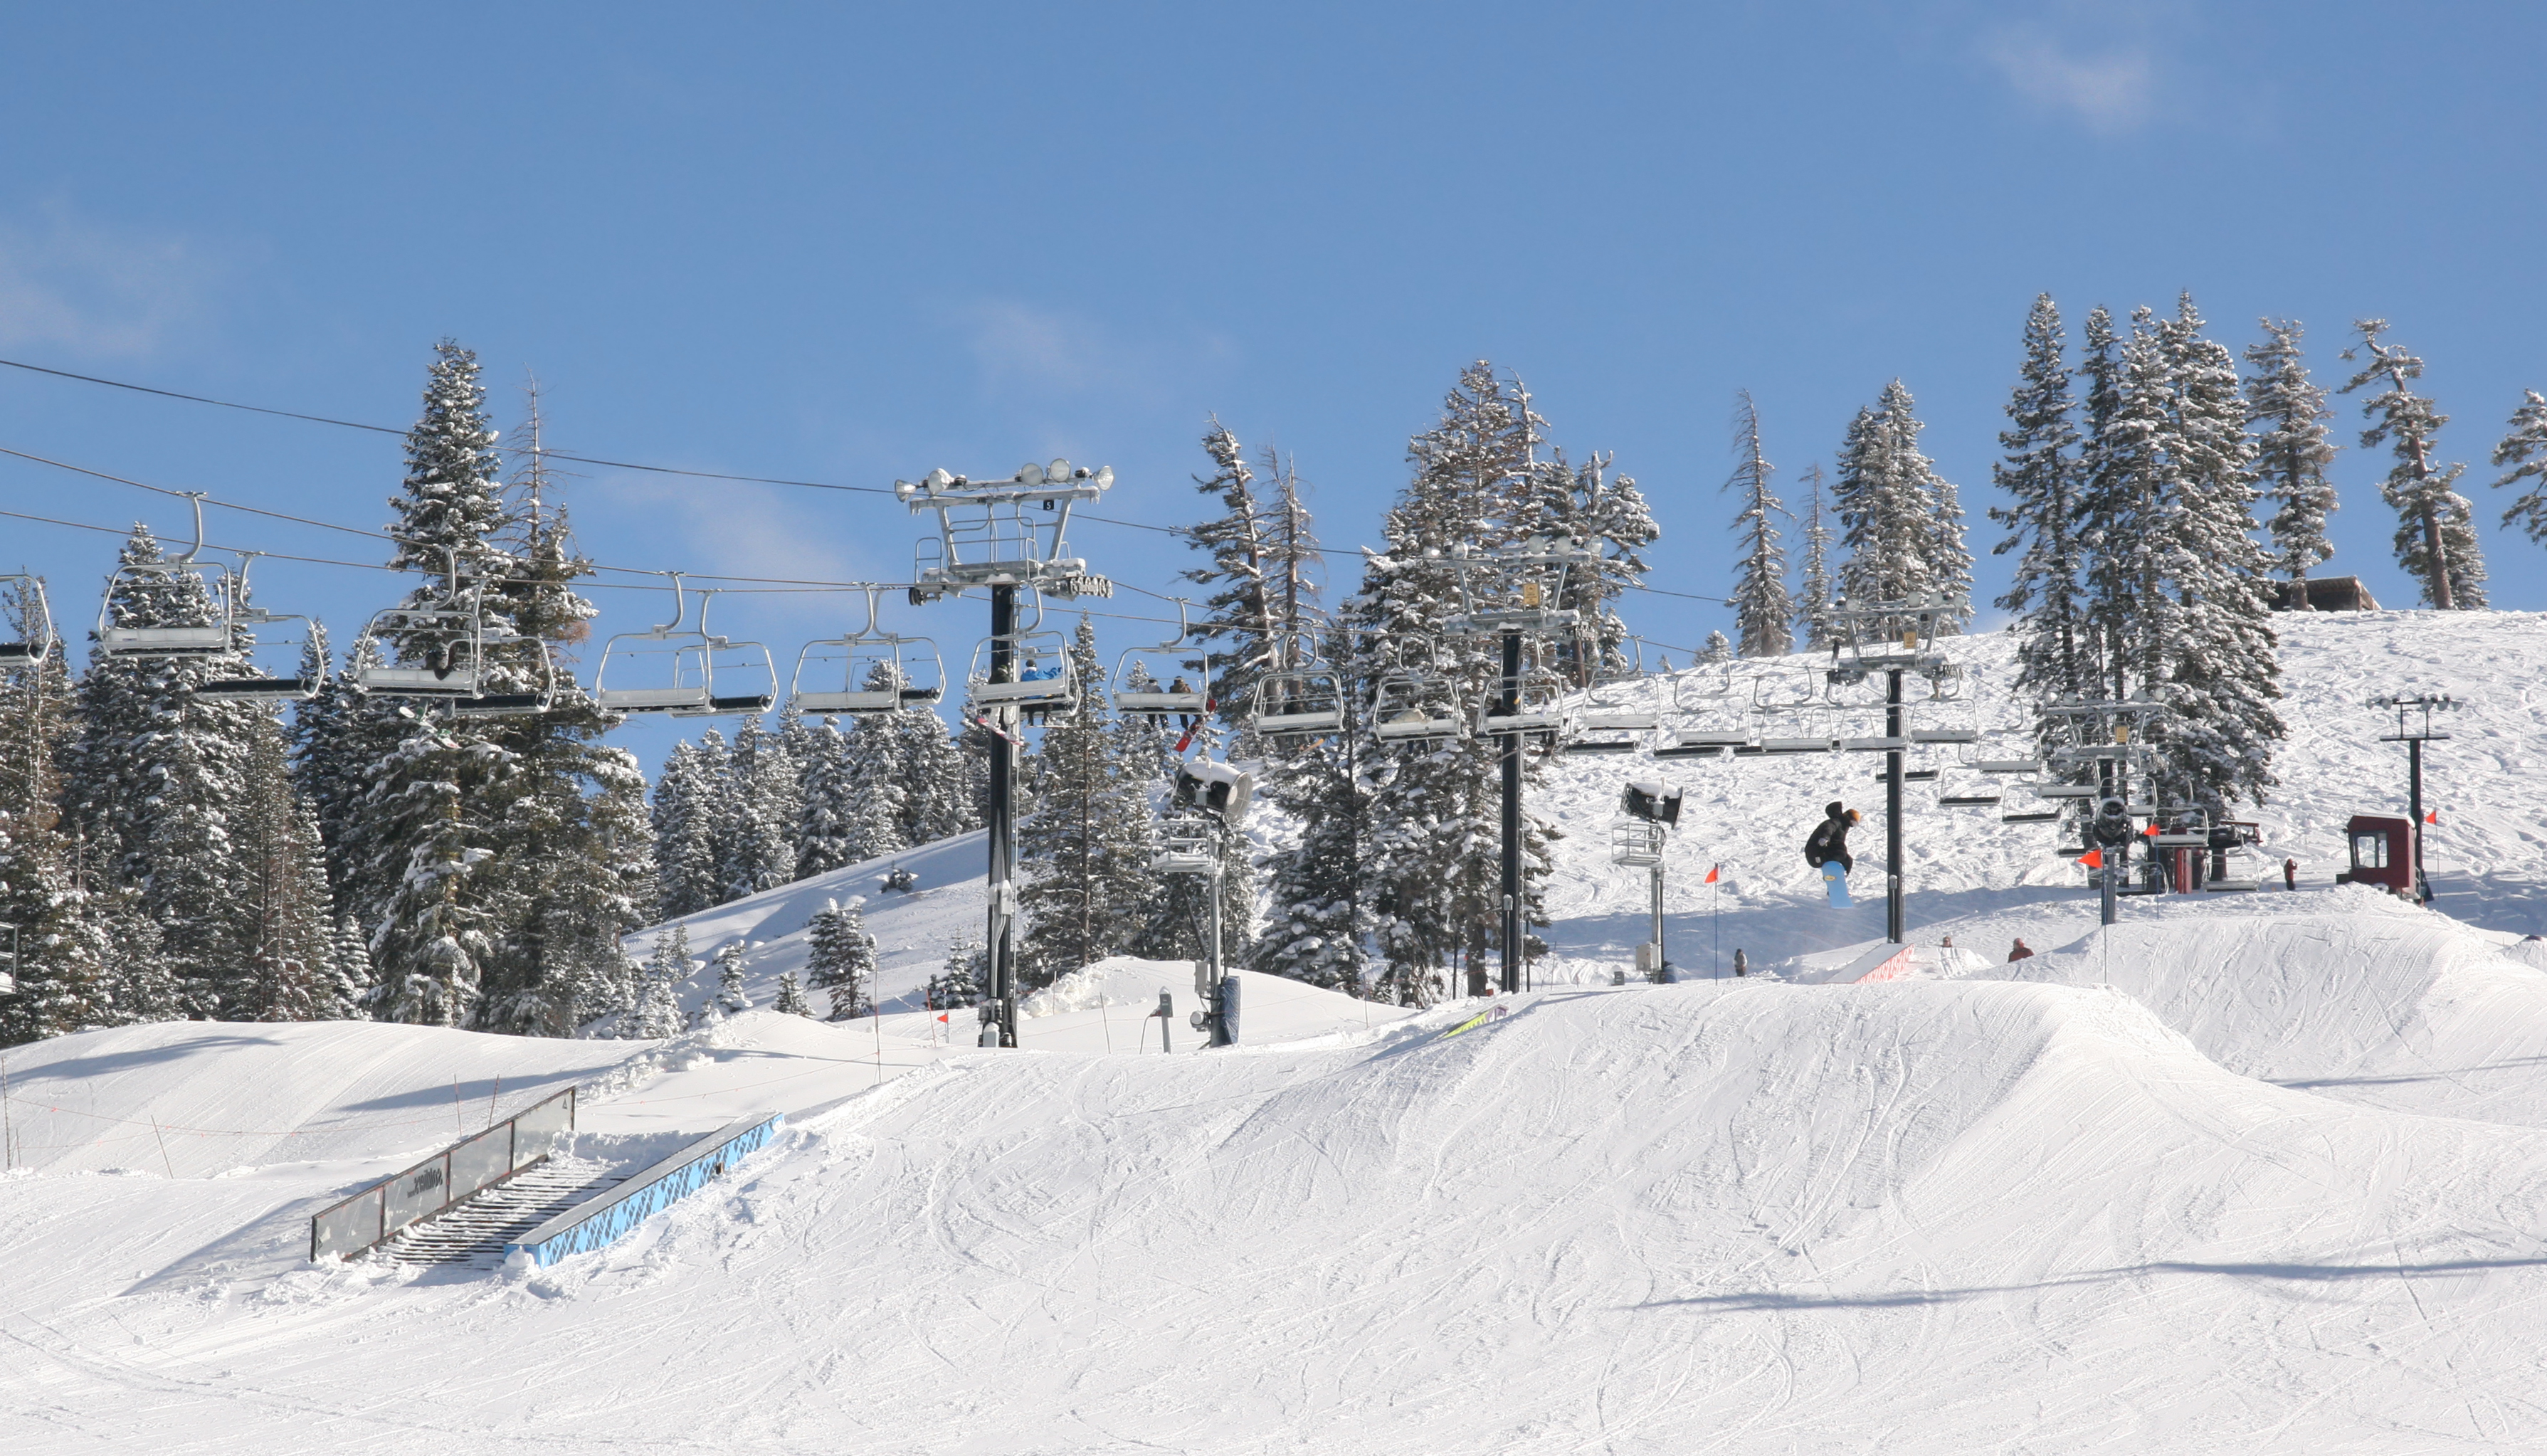 Ski Slope File:ski Slope In Boreal, California.jpg - Wikimedia Commons